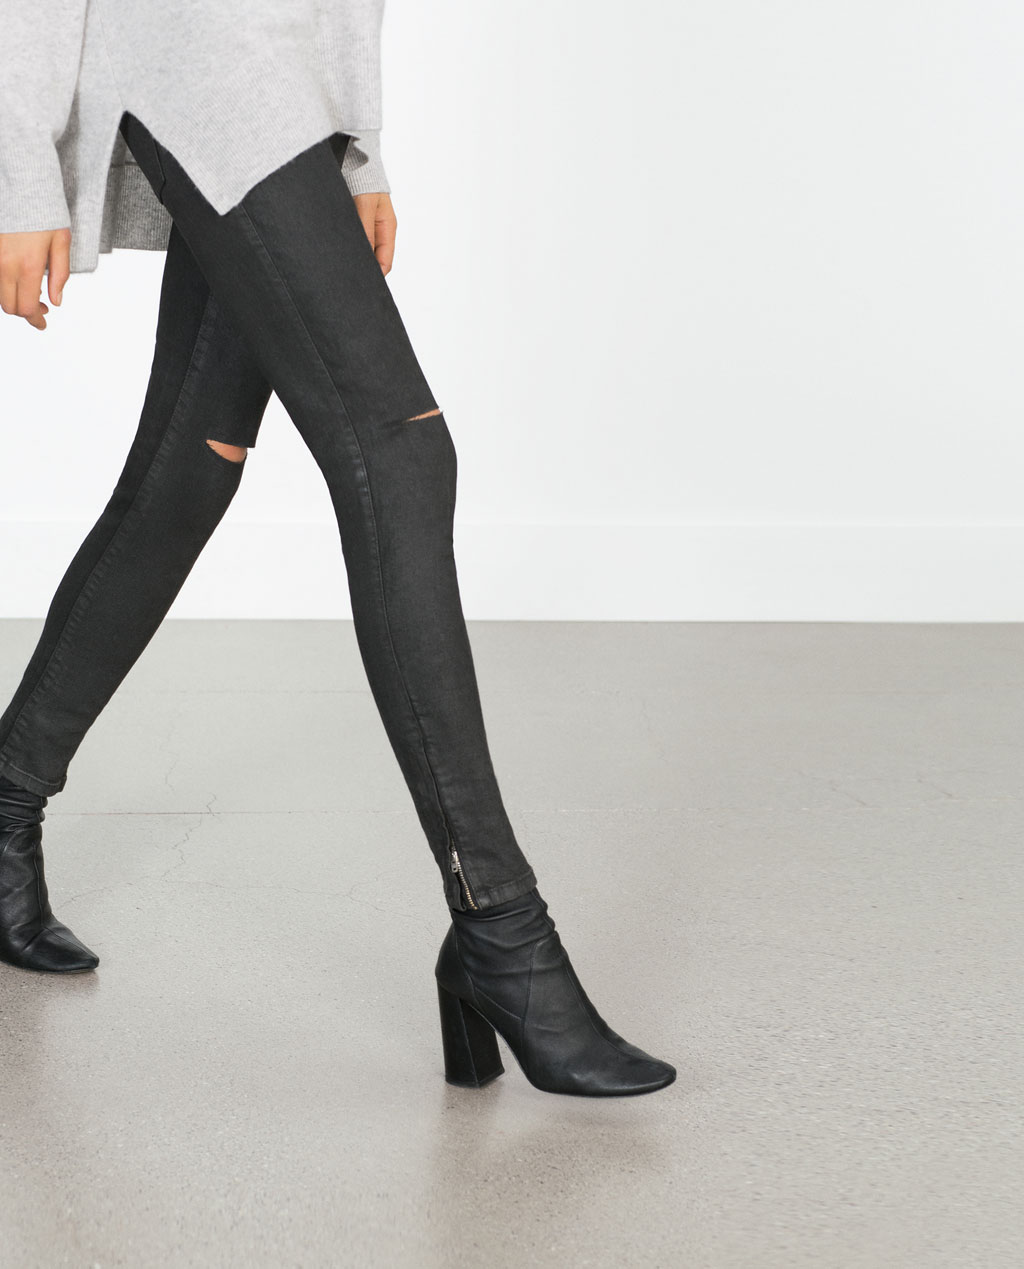 Mid Rise Coated Jeans €25.99 REF. 7147/223